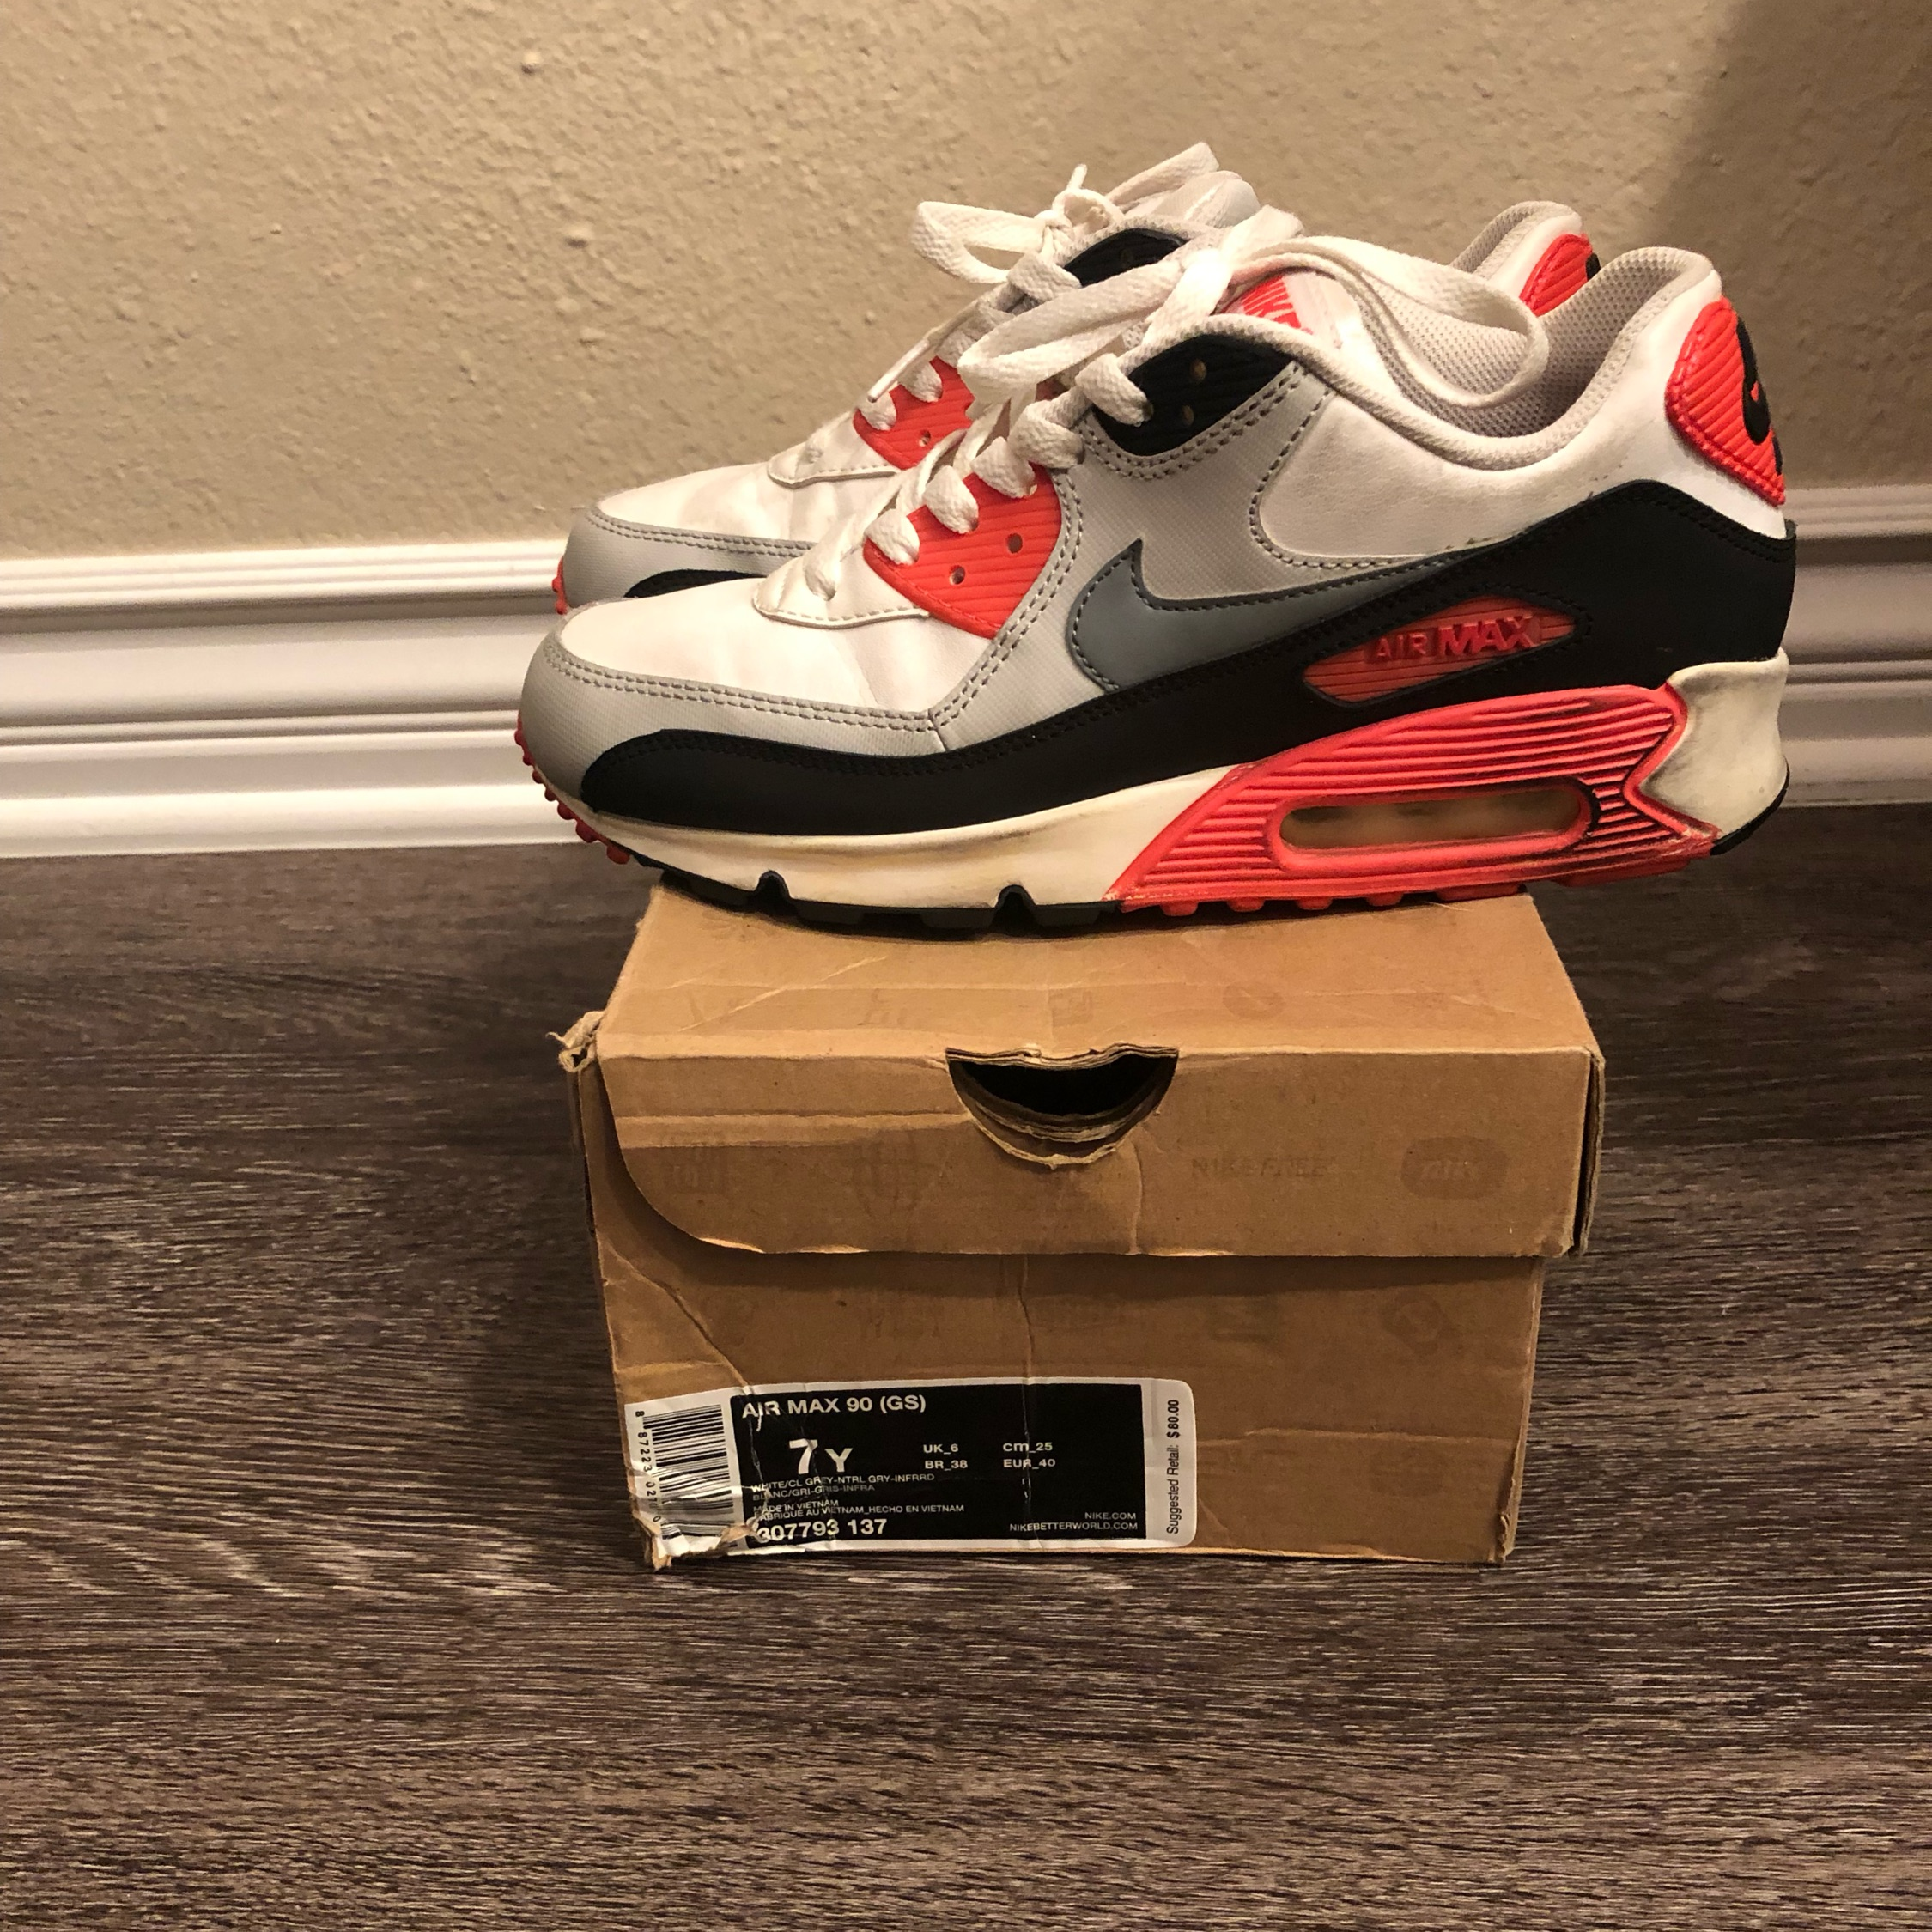 Air Max 90 Infrared Size 7 2012